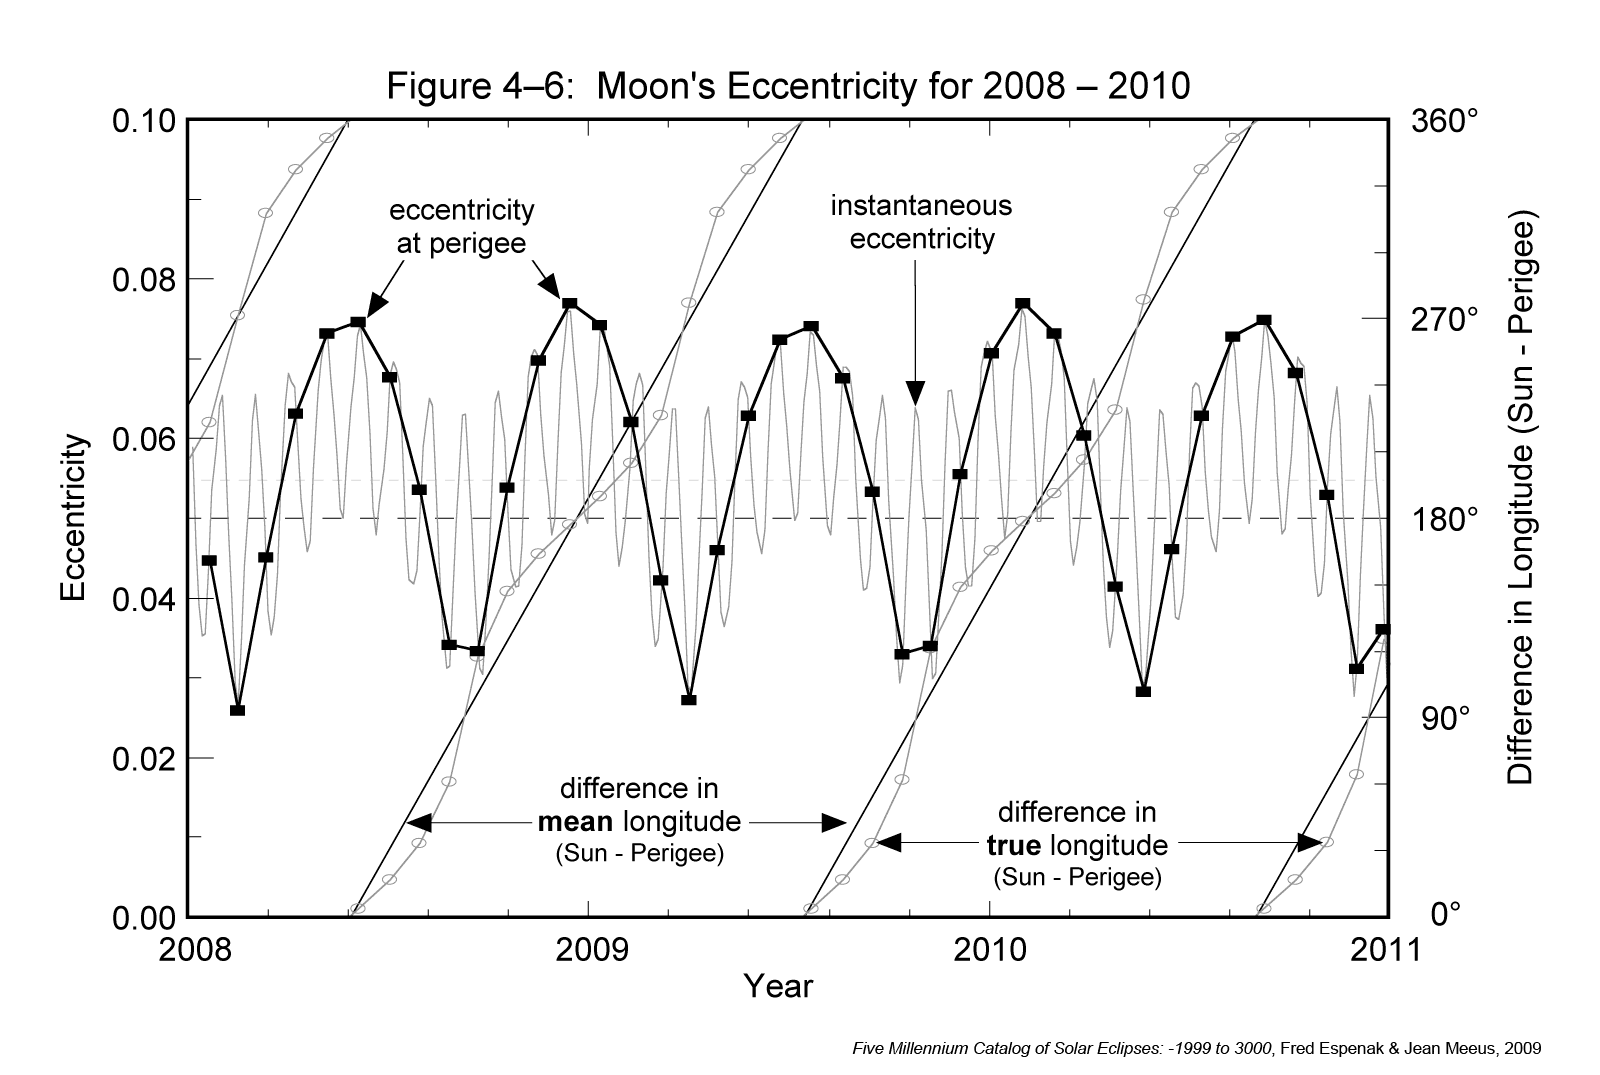 Eccentricity changes for Lunar Orbits